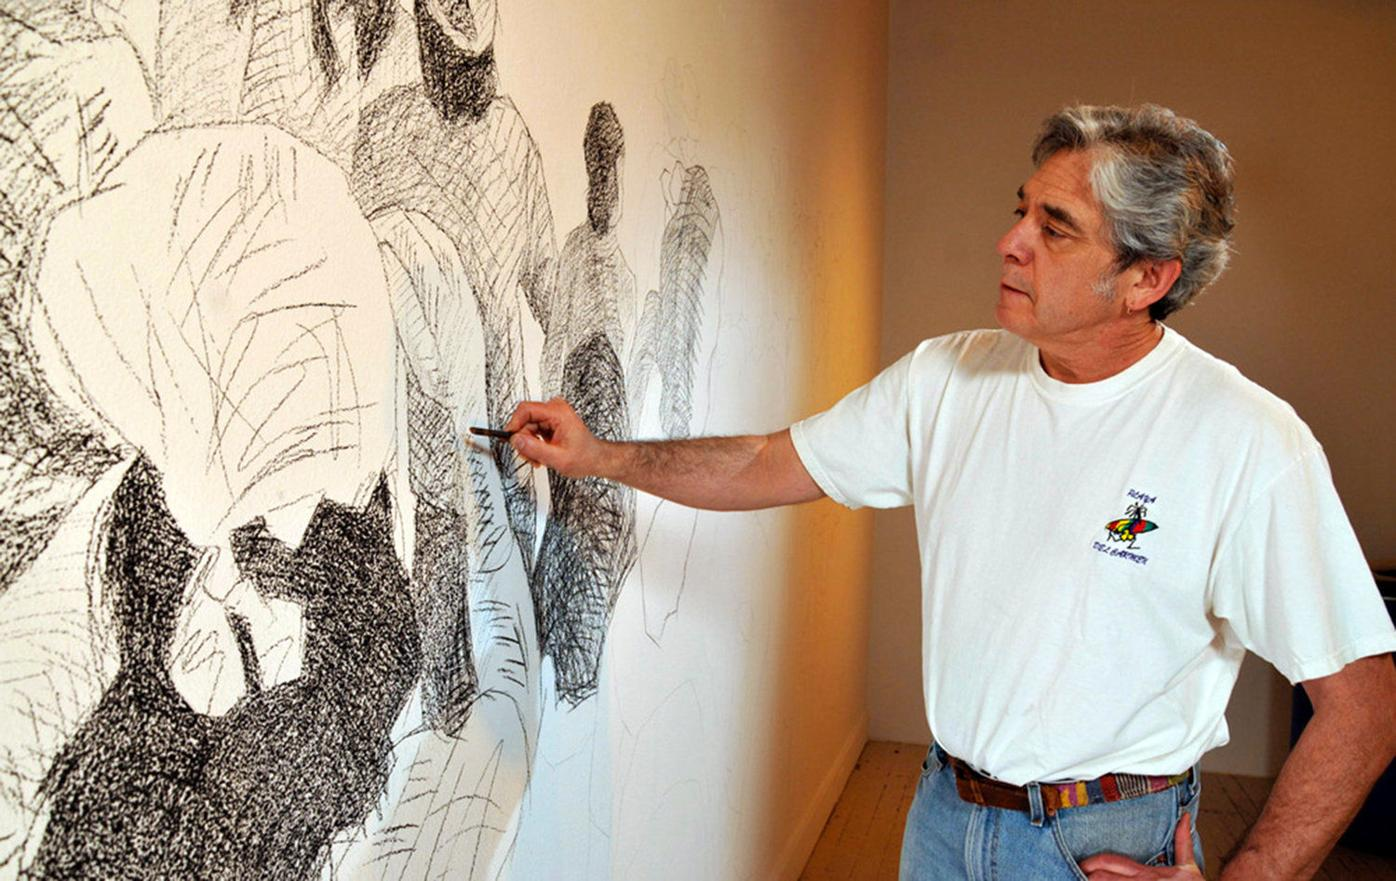 Chicano artist holds a mirror to society